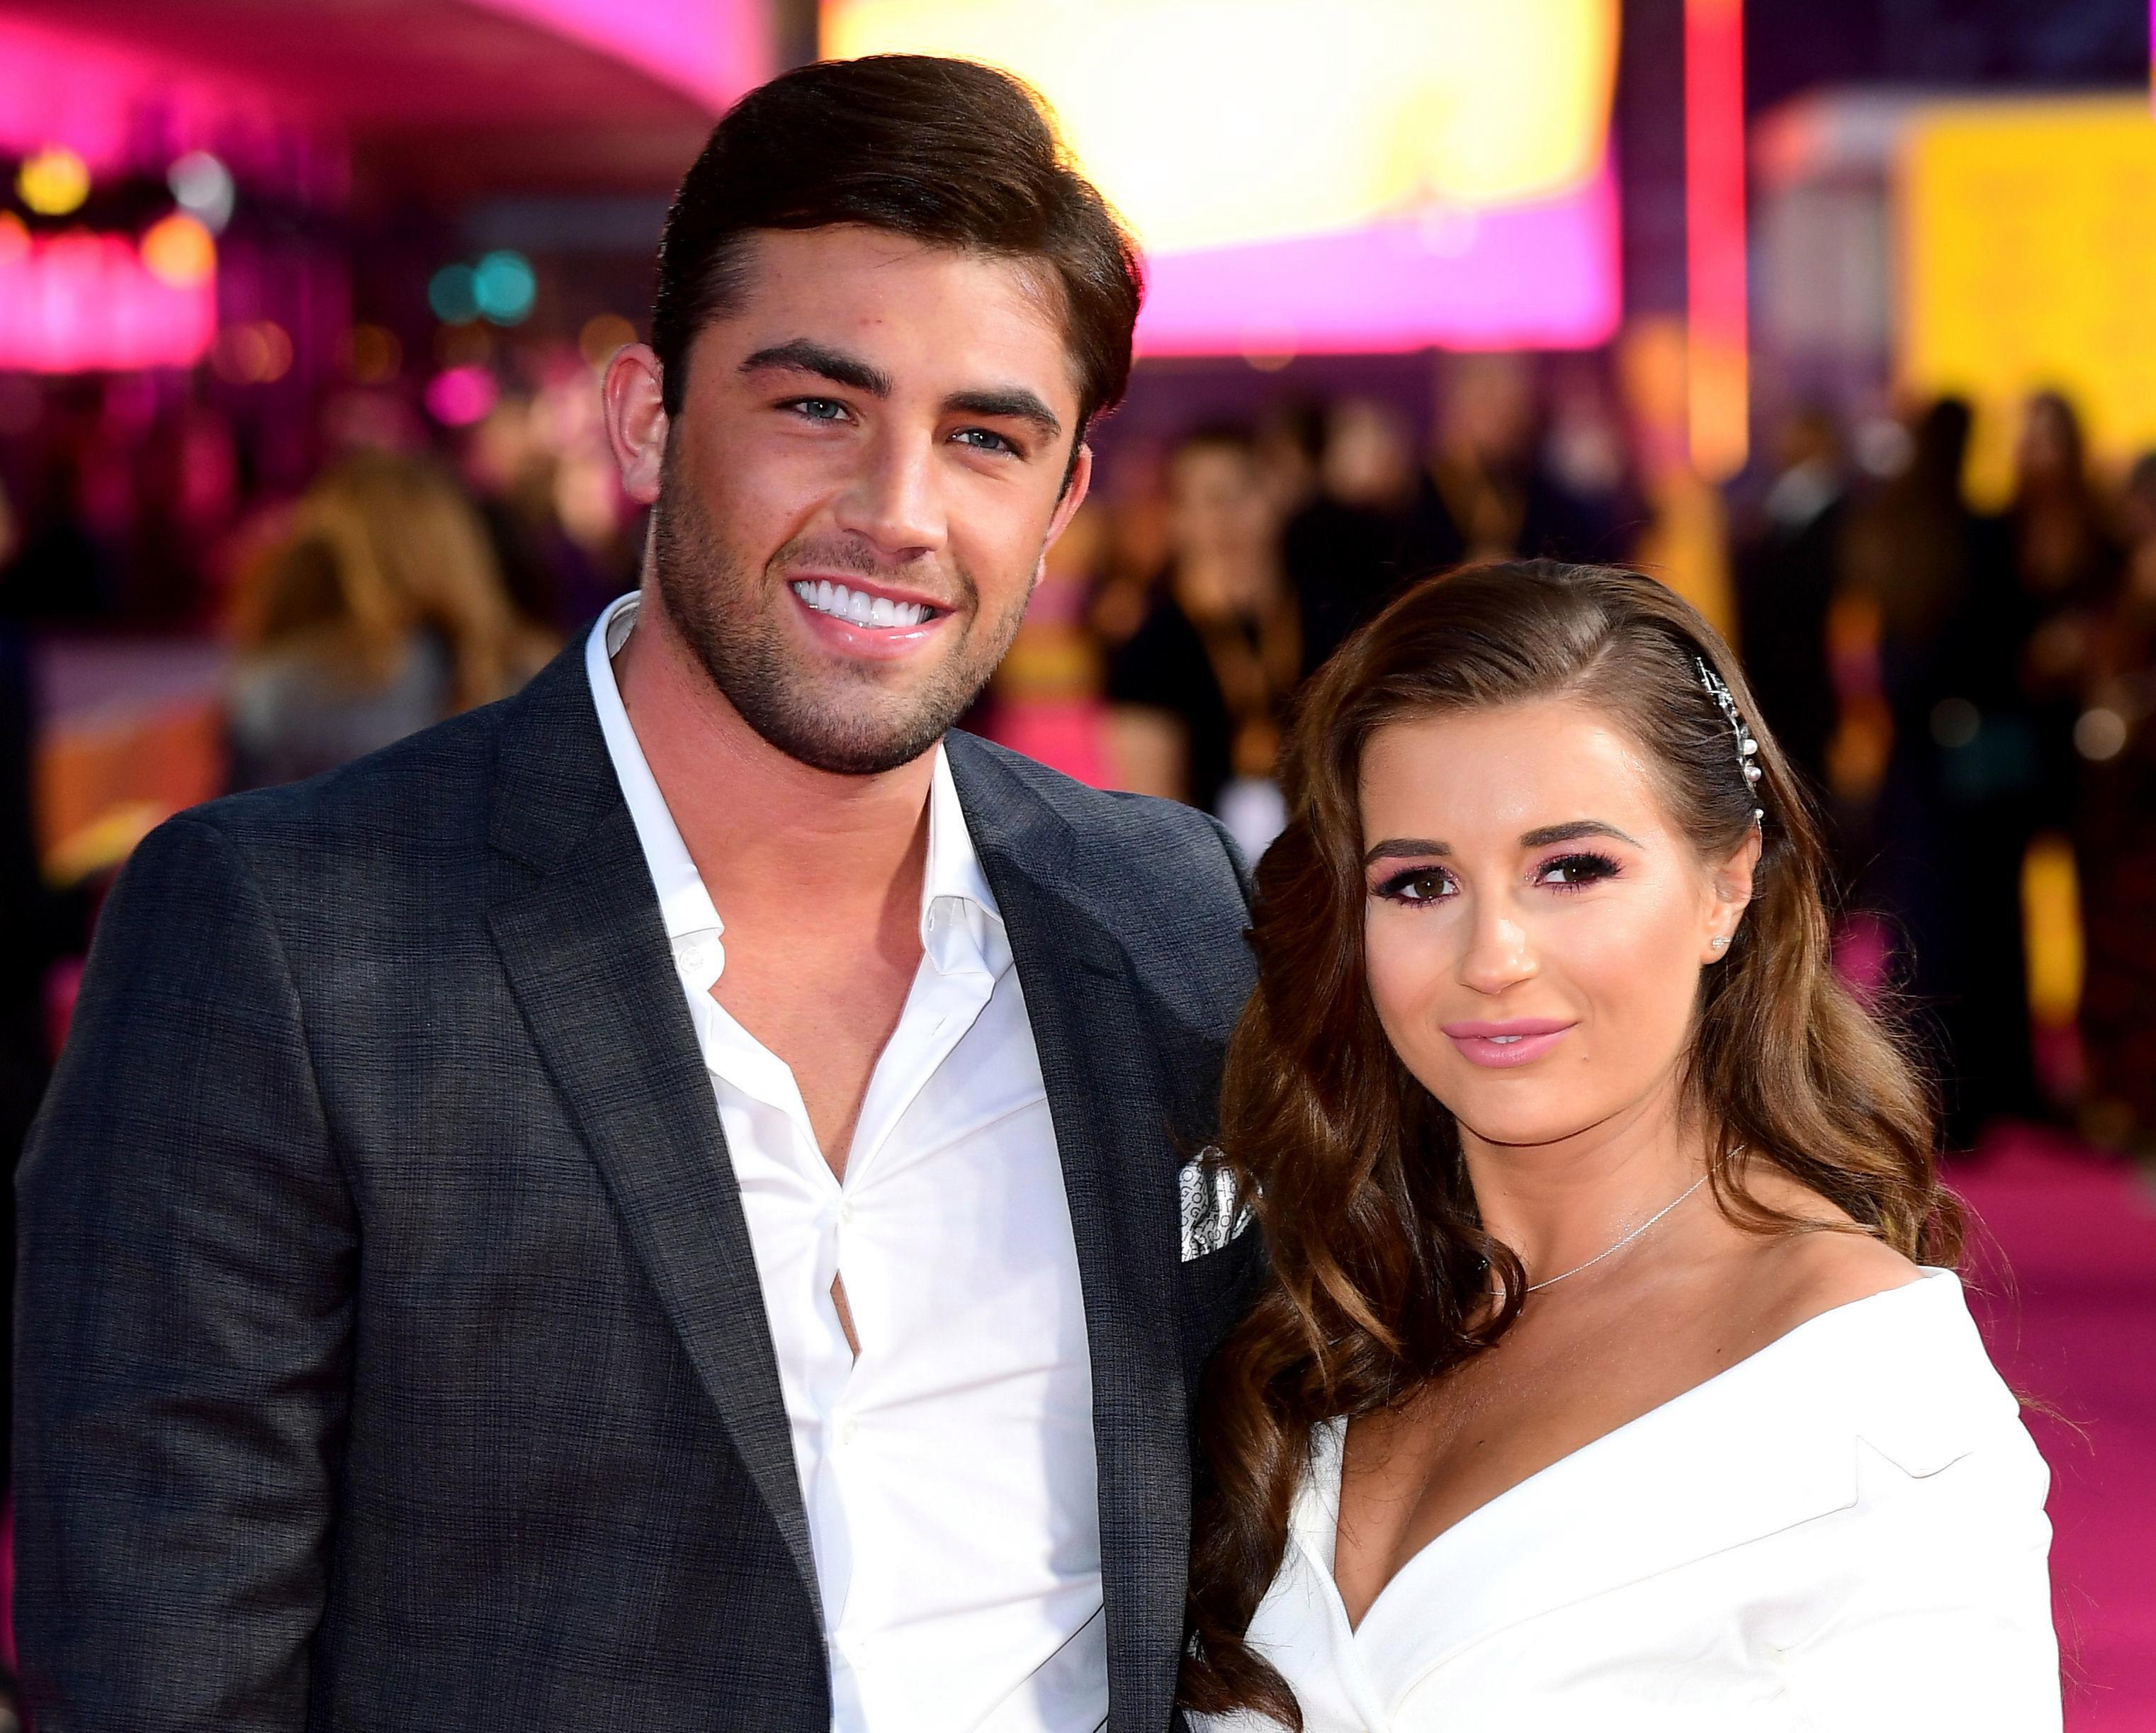 Jack Fincham lashes out at 'publicity loving' ex Dani Dyer and says 'he's the reason they won Love Island' after bitter split